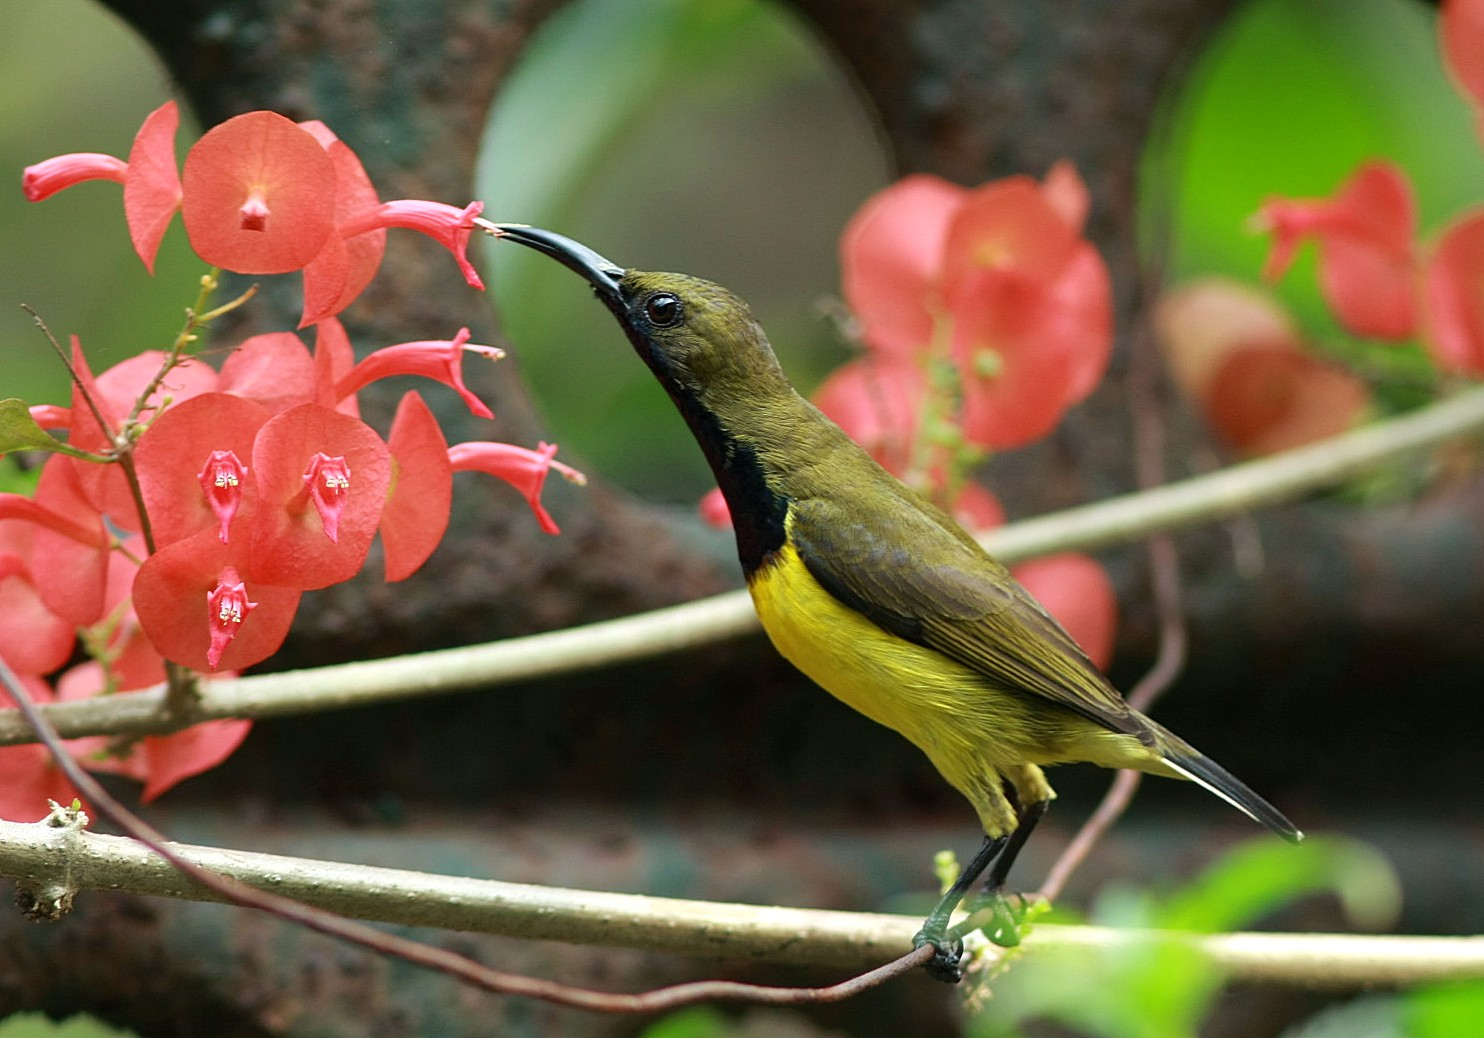 A male Olive-backed Sunbird enjoying the nectar in birder Lydia's garden. Photo by Lydia Robledo.